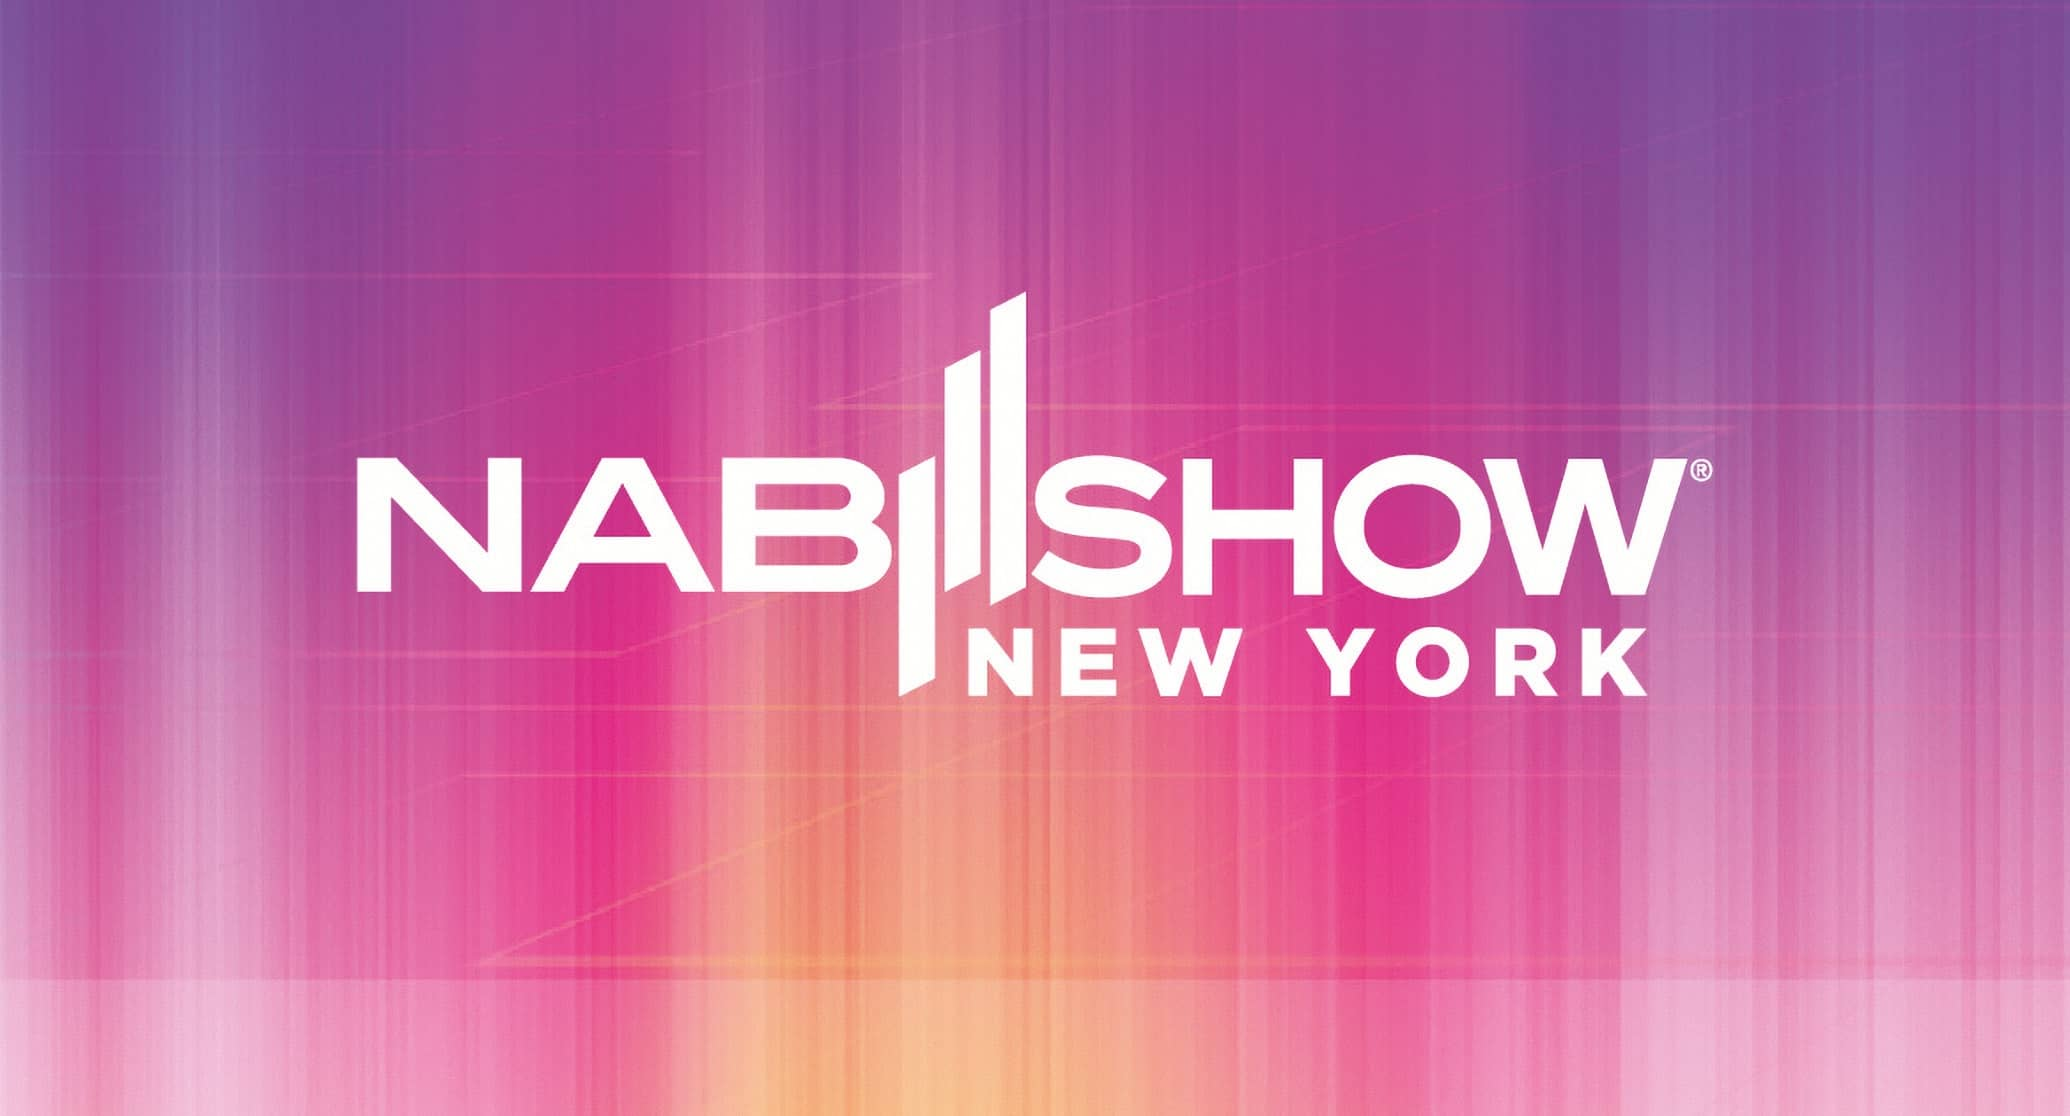 2020 NAB SHOW NEW YORK: NEW SESSIONS ADDED